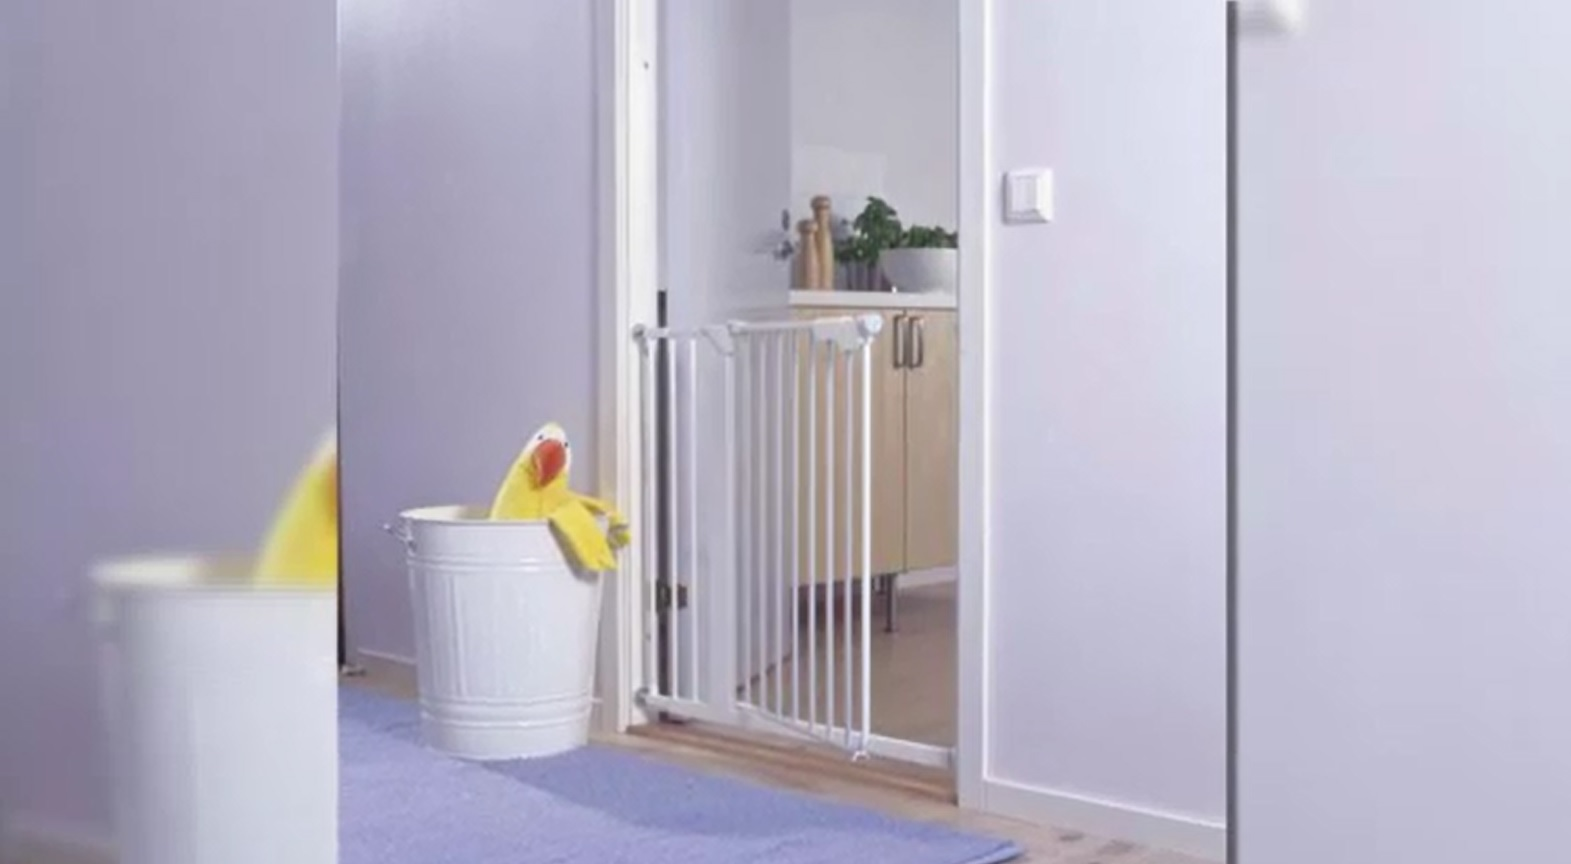 Ikea Bett Ohne Mittelbalken ~ IKEA recalls baby gates due to malfunction in locking mechanism